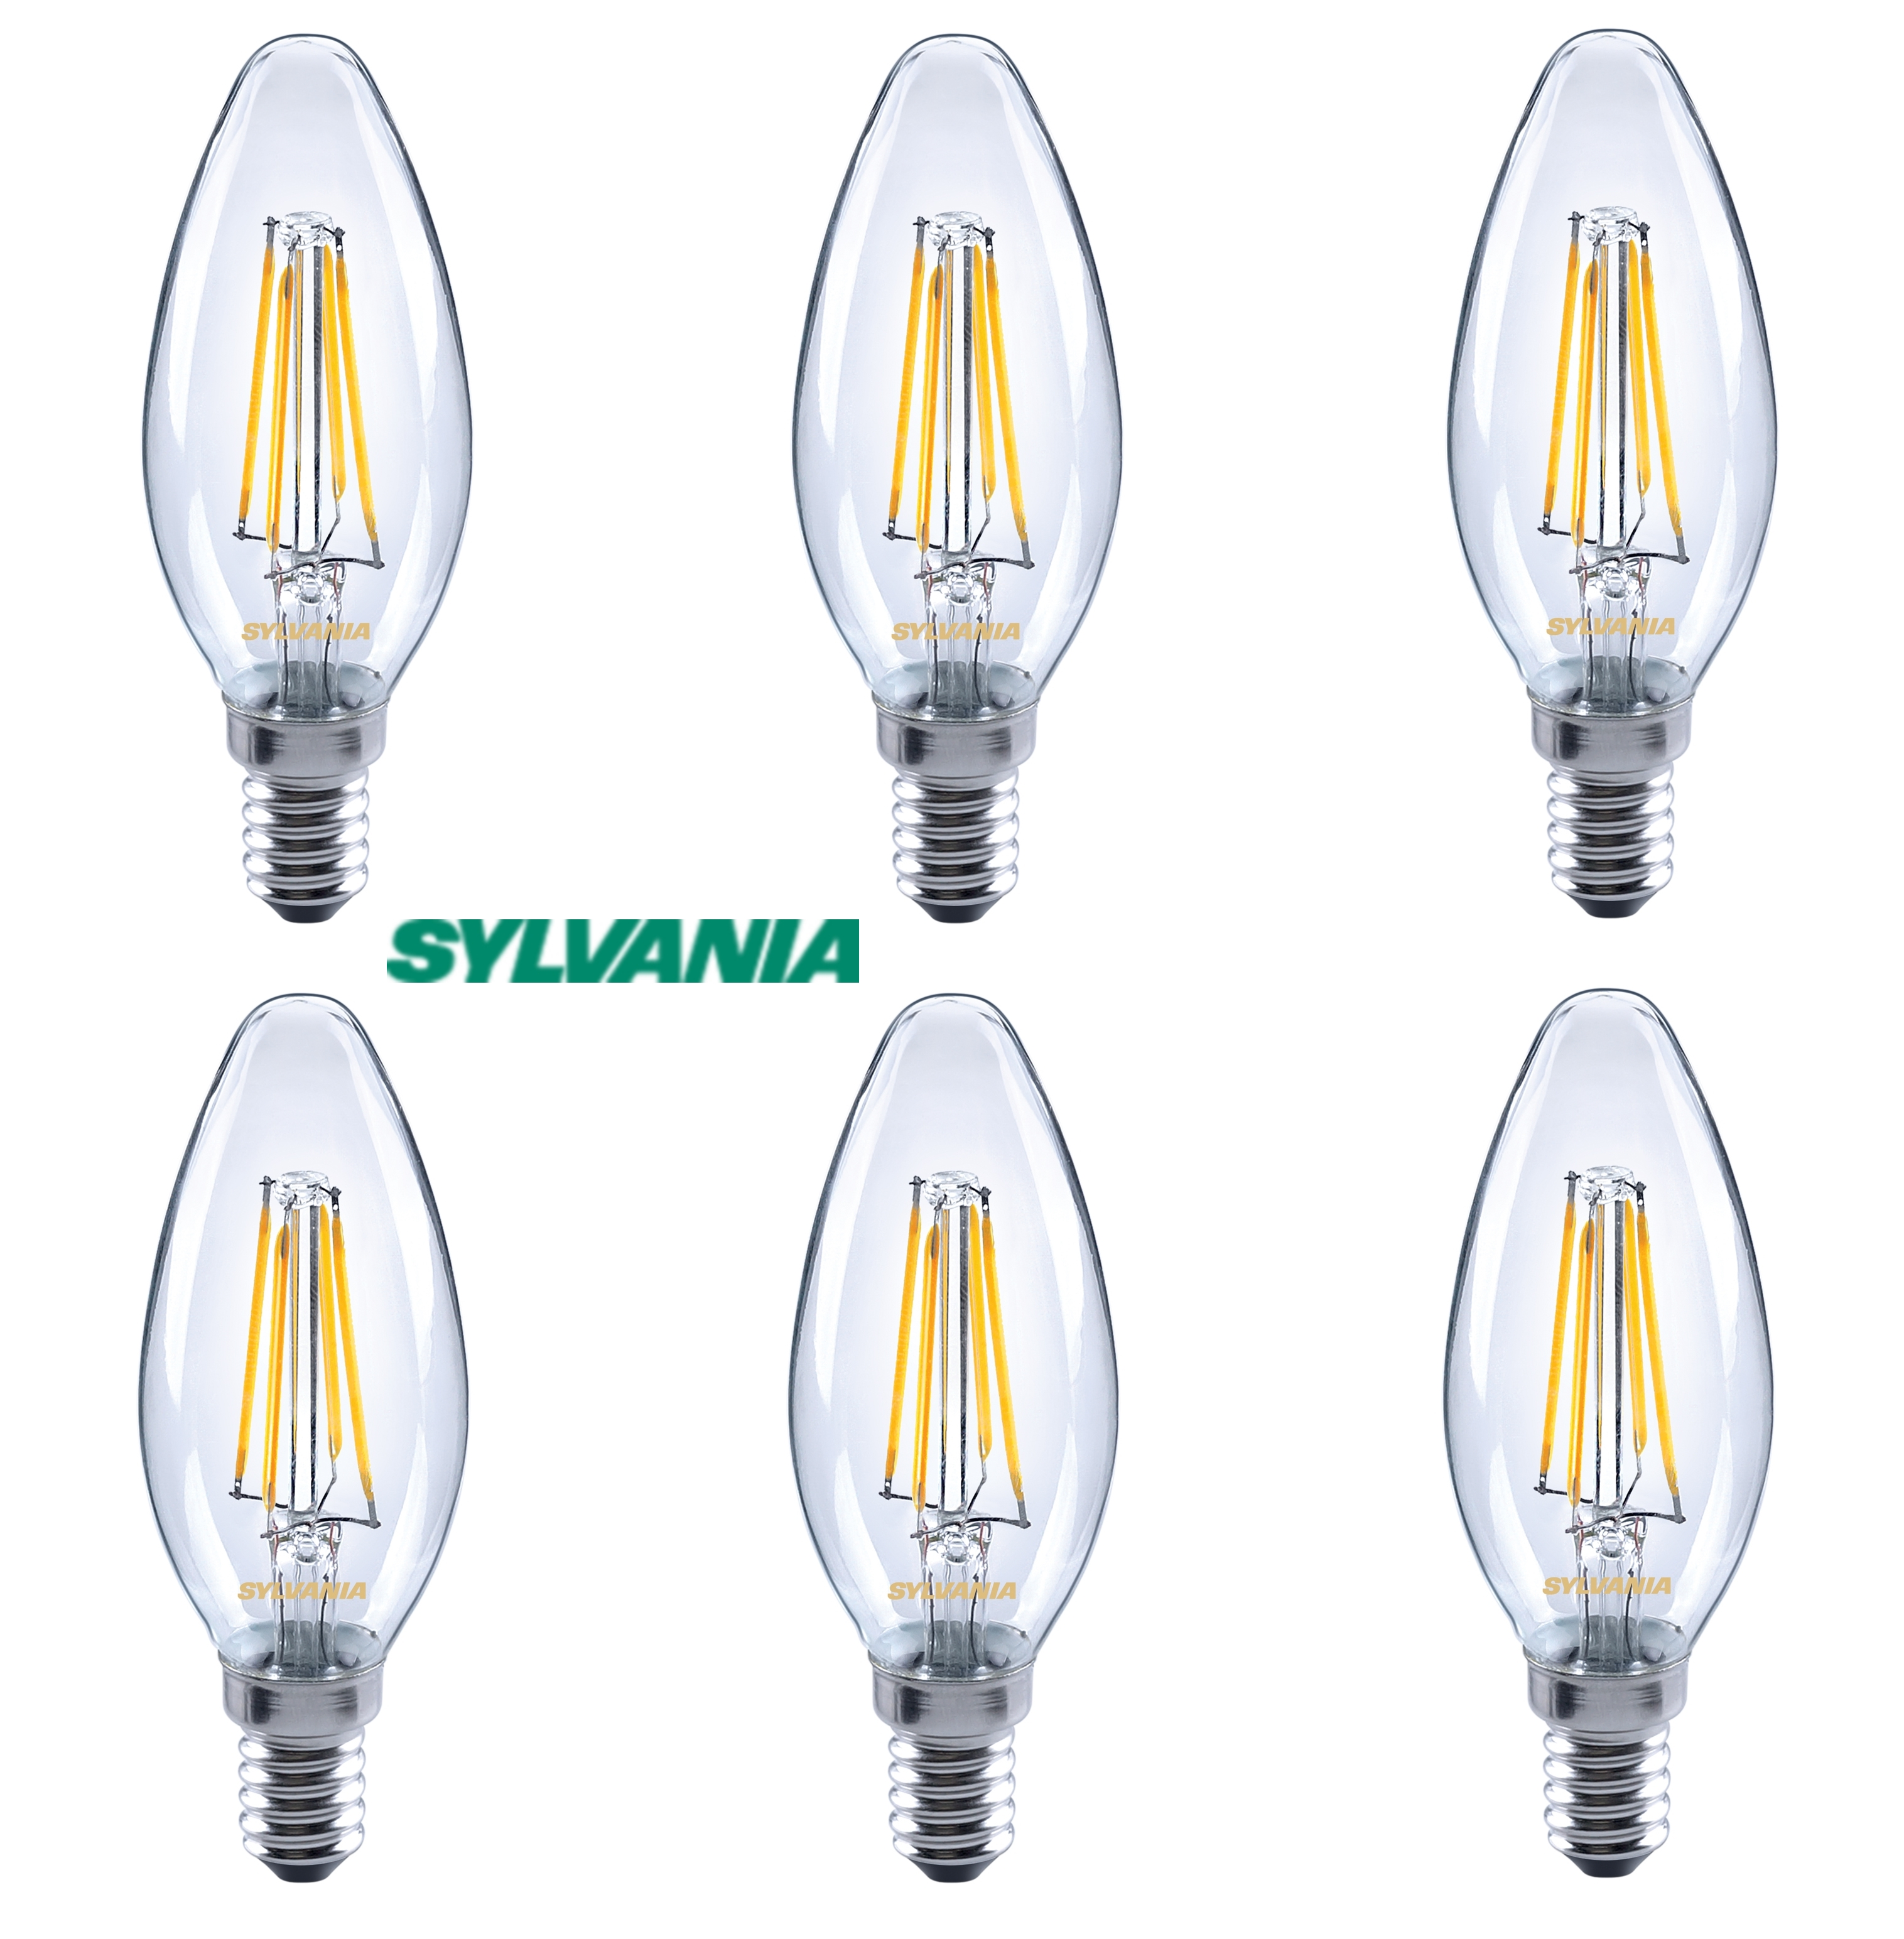 6x Sylvania 4w 37w 420lm Led Traditional Candle Light Bulb E14 Ses Warm White Liminaires